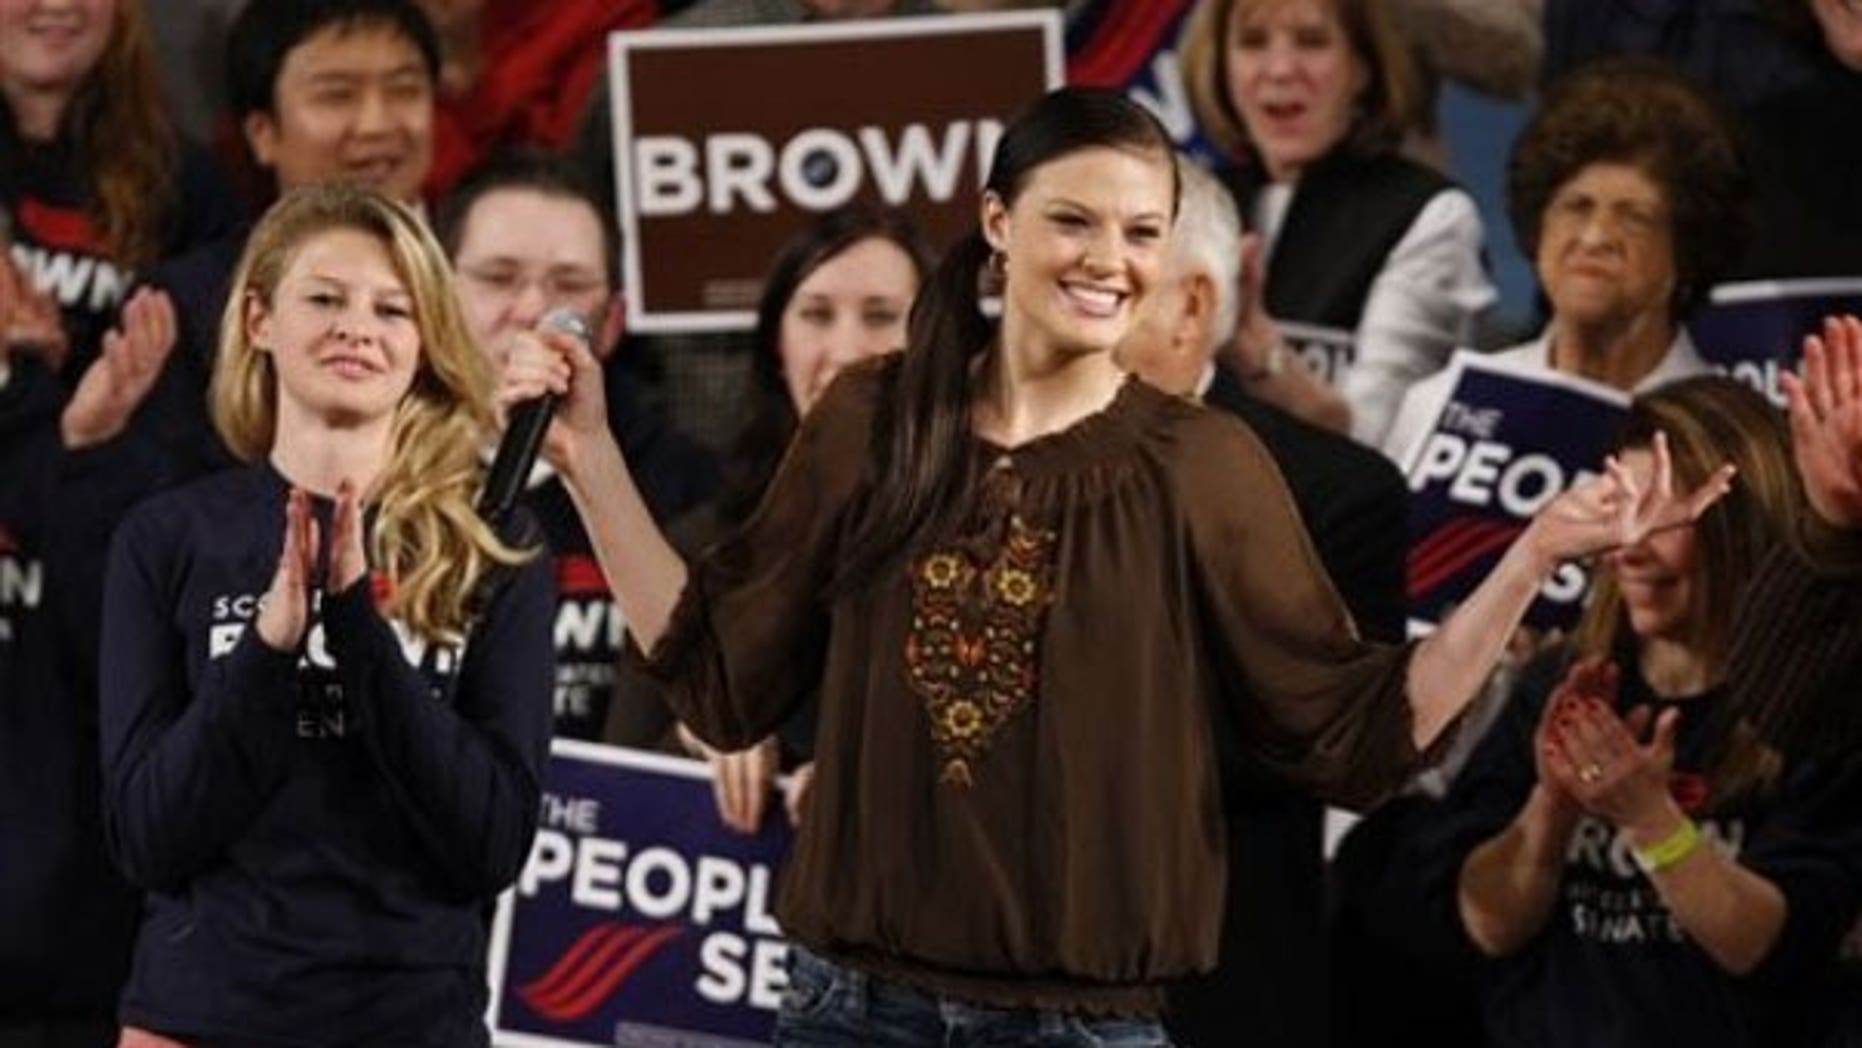 FILE: The daughters of Massachusetts Sen. Scott Brown, Ayla, right, a student at Boston College, and Arianna, left, a student at Syracuse University, are introduced at a campaign rally in Worcester, Mass., on Jan. 17. (AP).